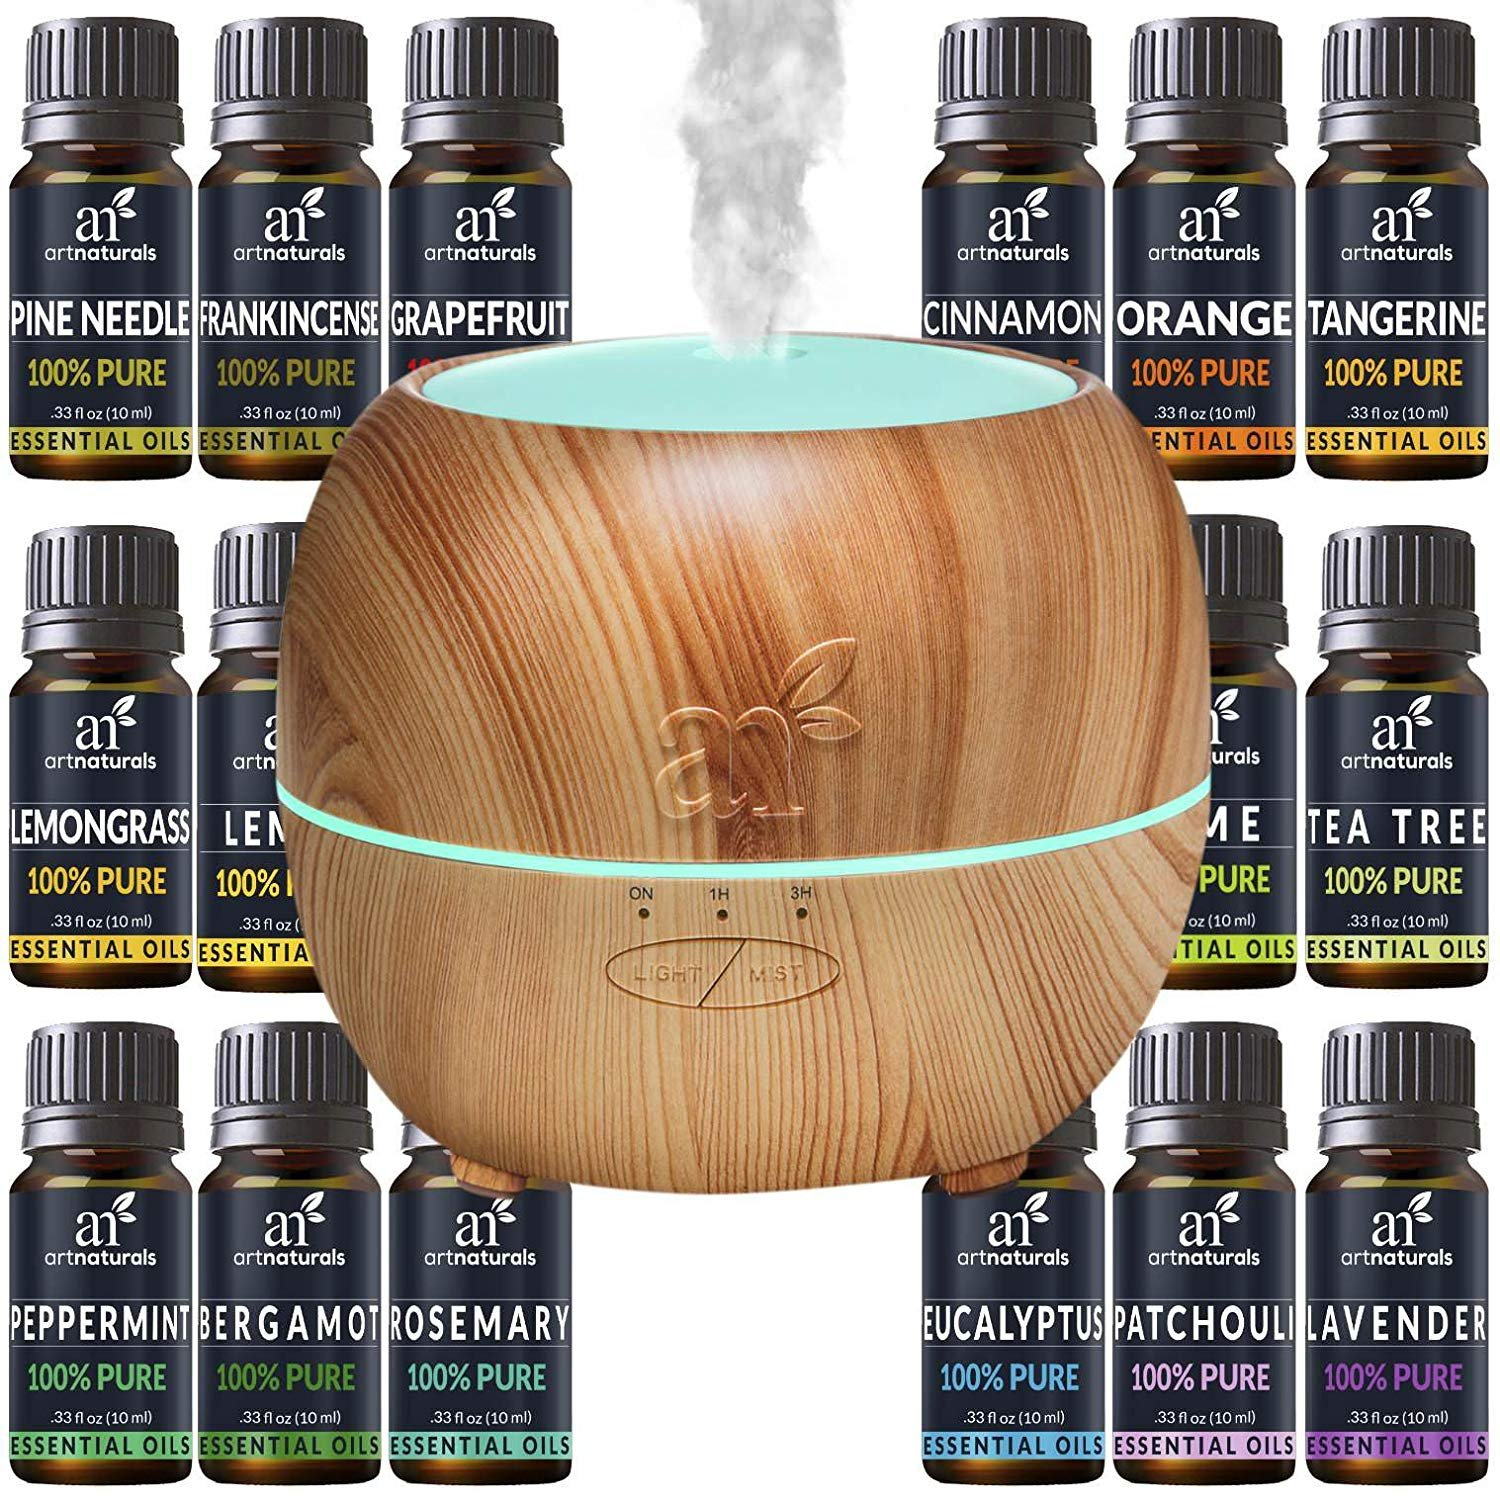 ArtNaturals Aromatherapy Essential Oil and Diffuser Gift Set - (150ml Tank & Top 16 Oils) - Peppermint, Tee Tree, Lavender & Eucalyptus - Auto Shut-Off and 7 Color LED Lights – Therapeutic Grade by ArtNaturals (Image #1)